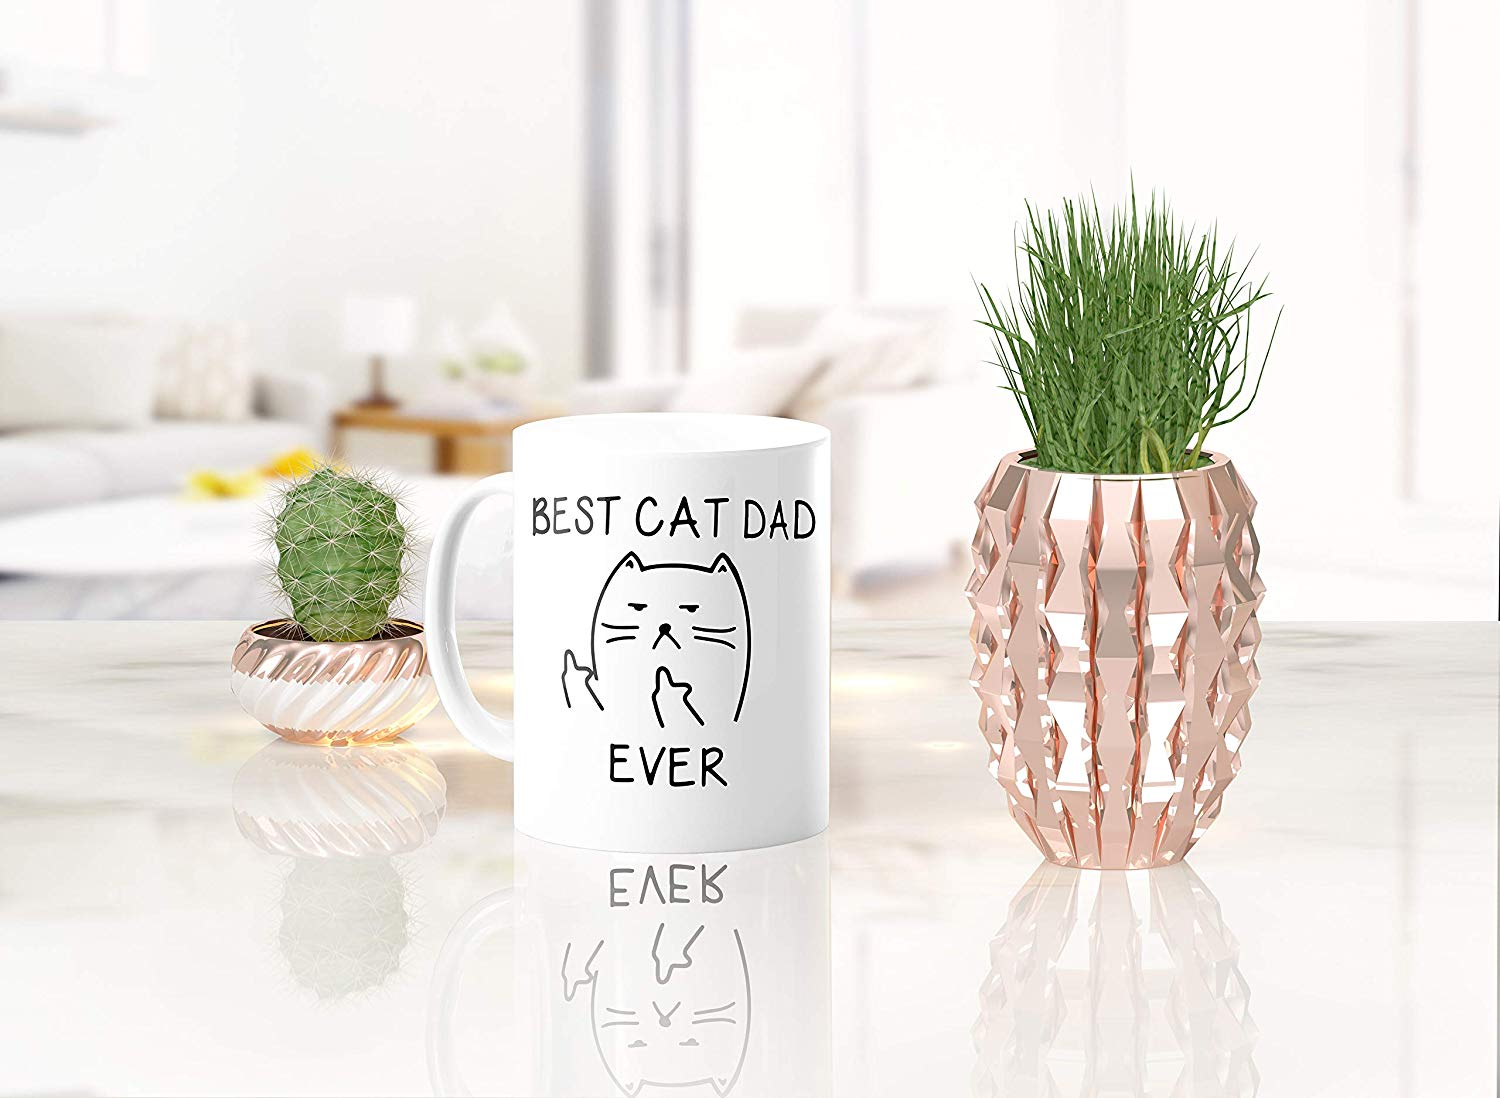 Best Cat Dad EverFunny Cat Lover Gifts Funny Middle Finger Coffee MugUnique Birthday Gift For Dad B079FZ3DHS 4